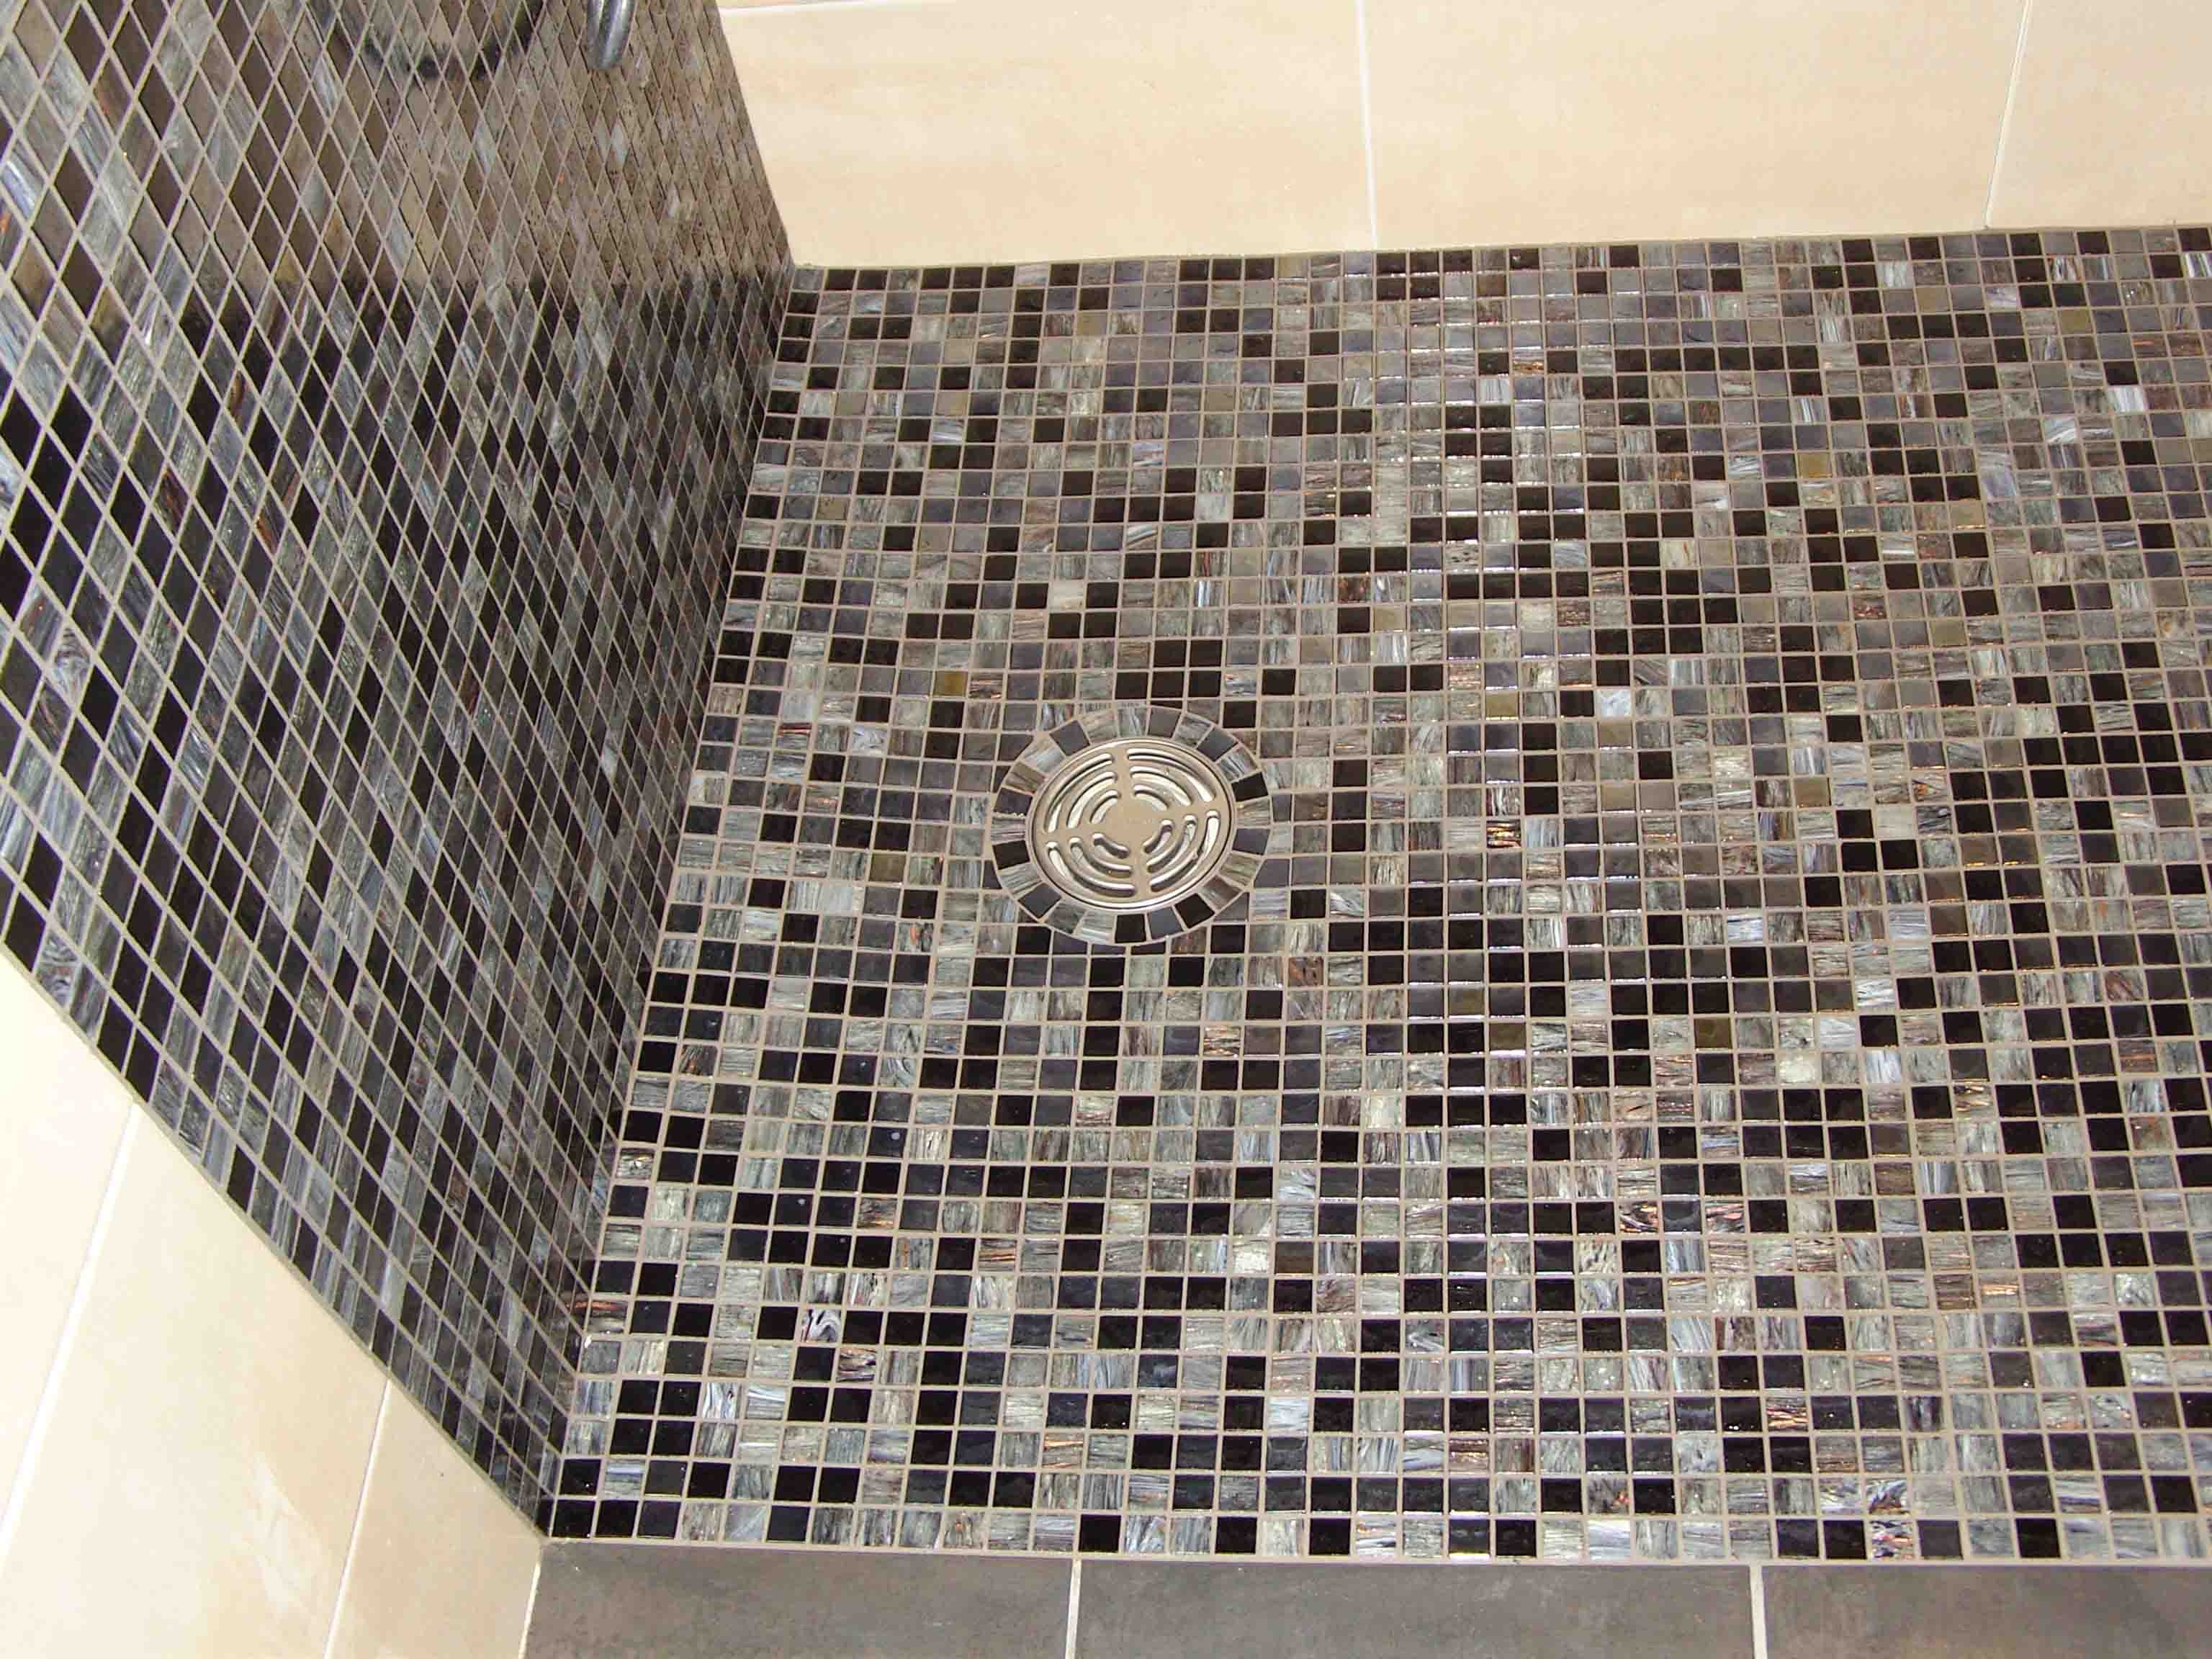 Carrelage sol douche mosaique carrelage id es de for Carrelage sol de douche